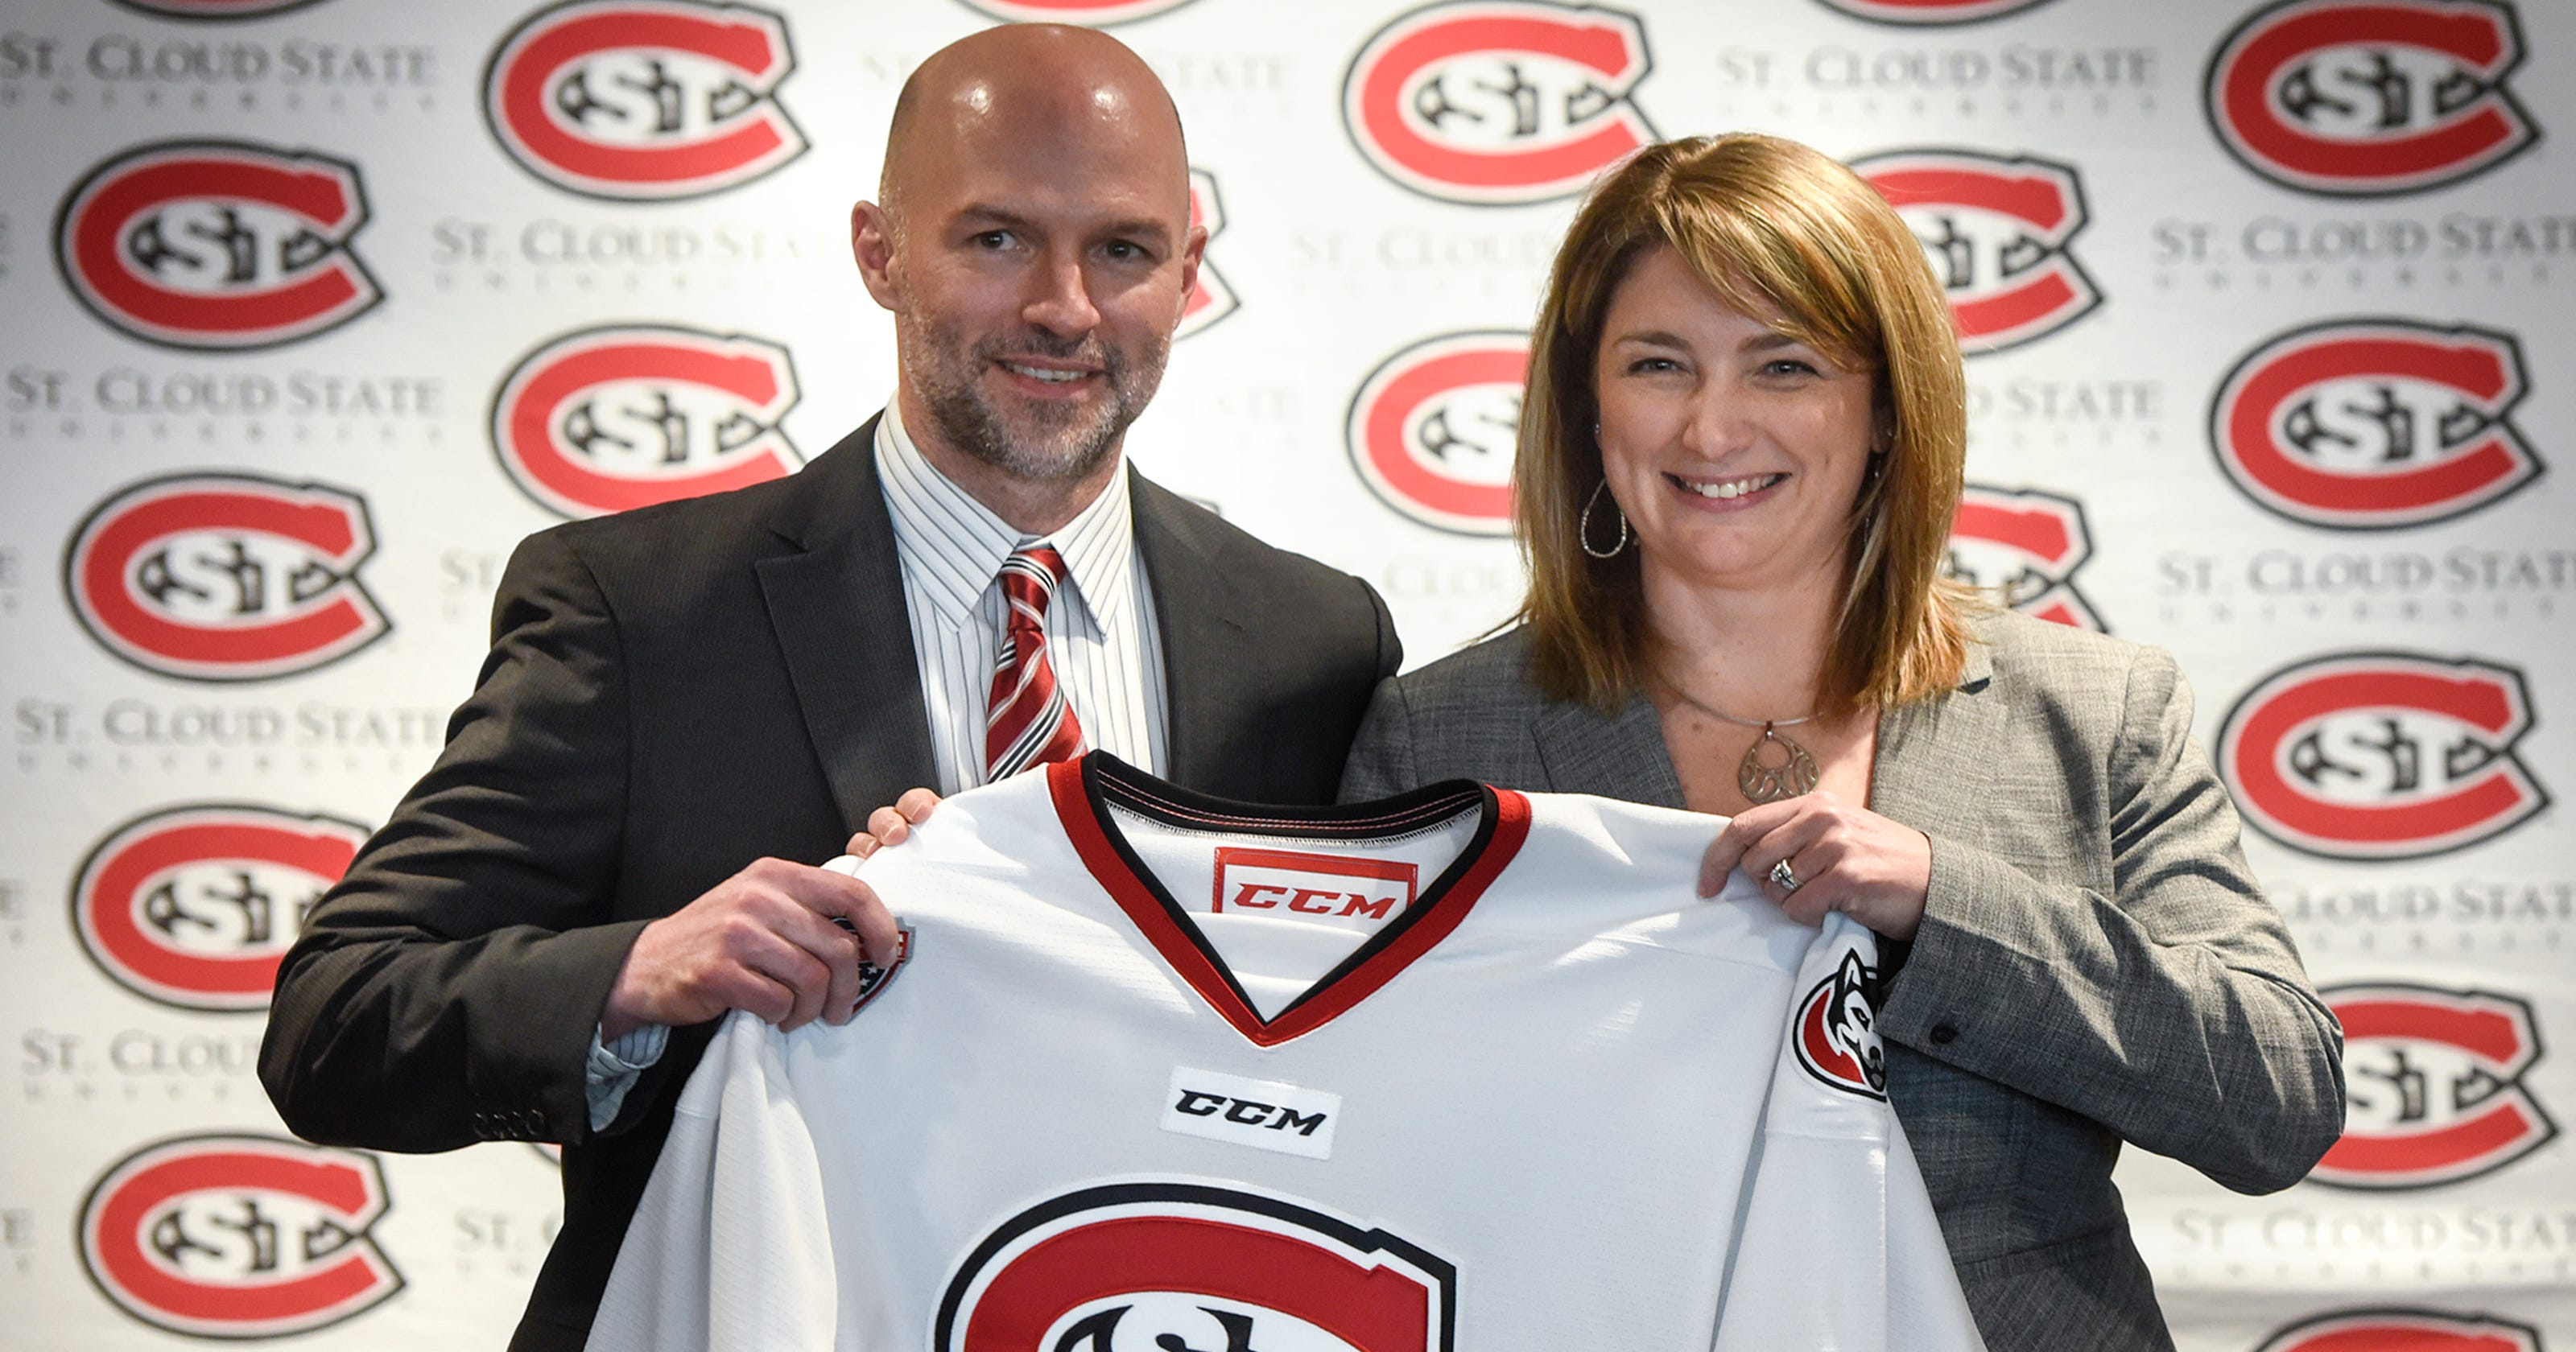 UMD assistant coach signs 5-year deal to be SCSU men's ...